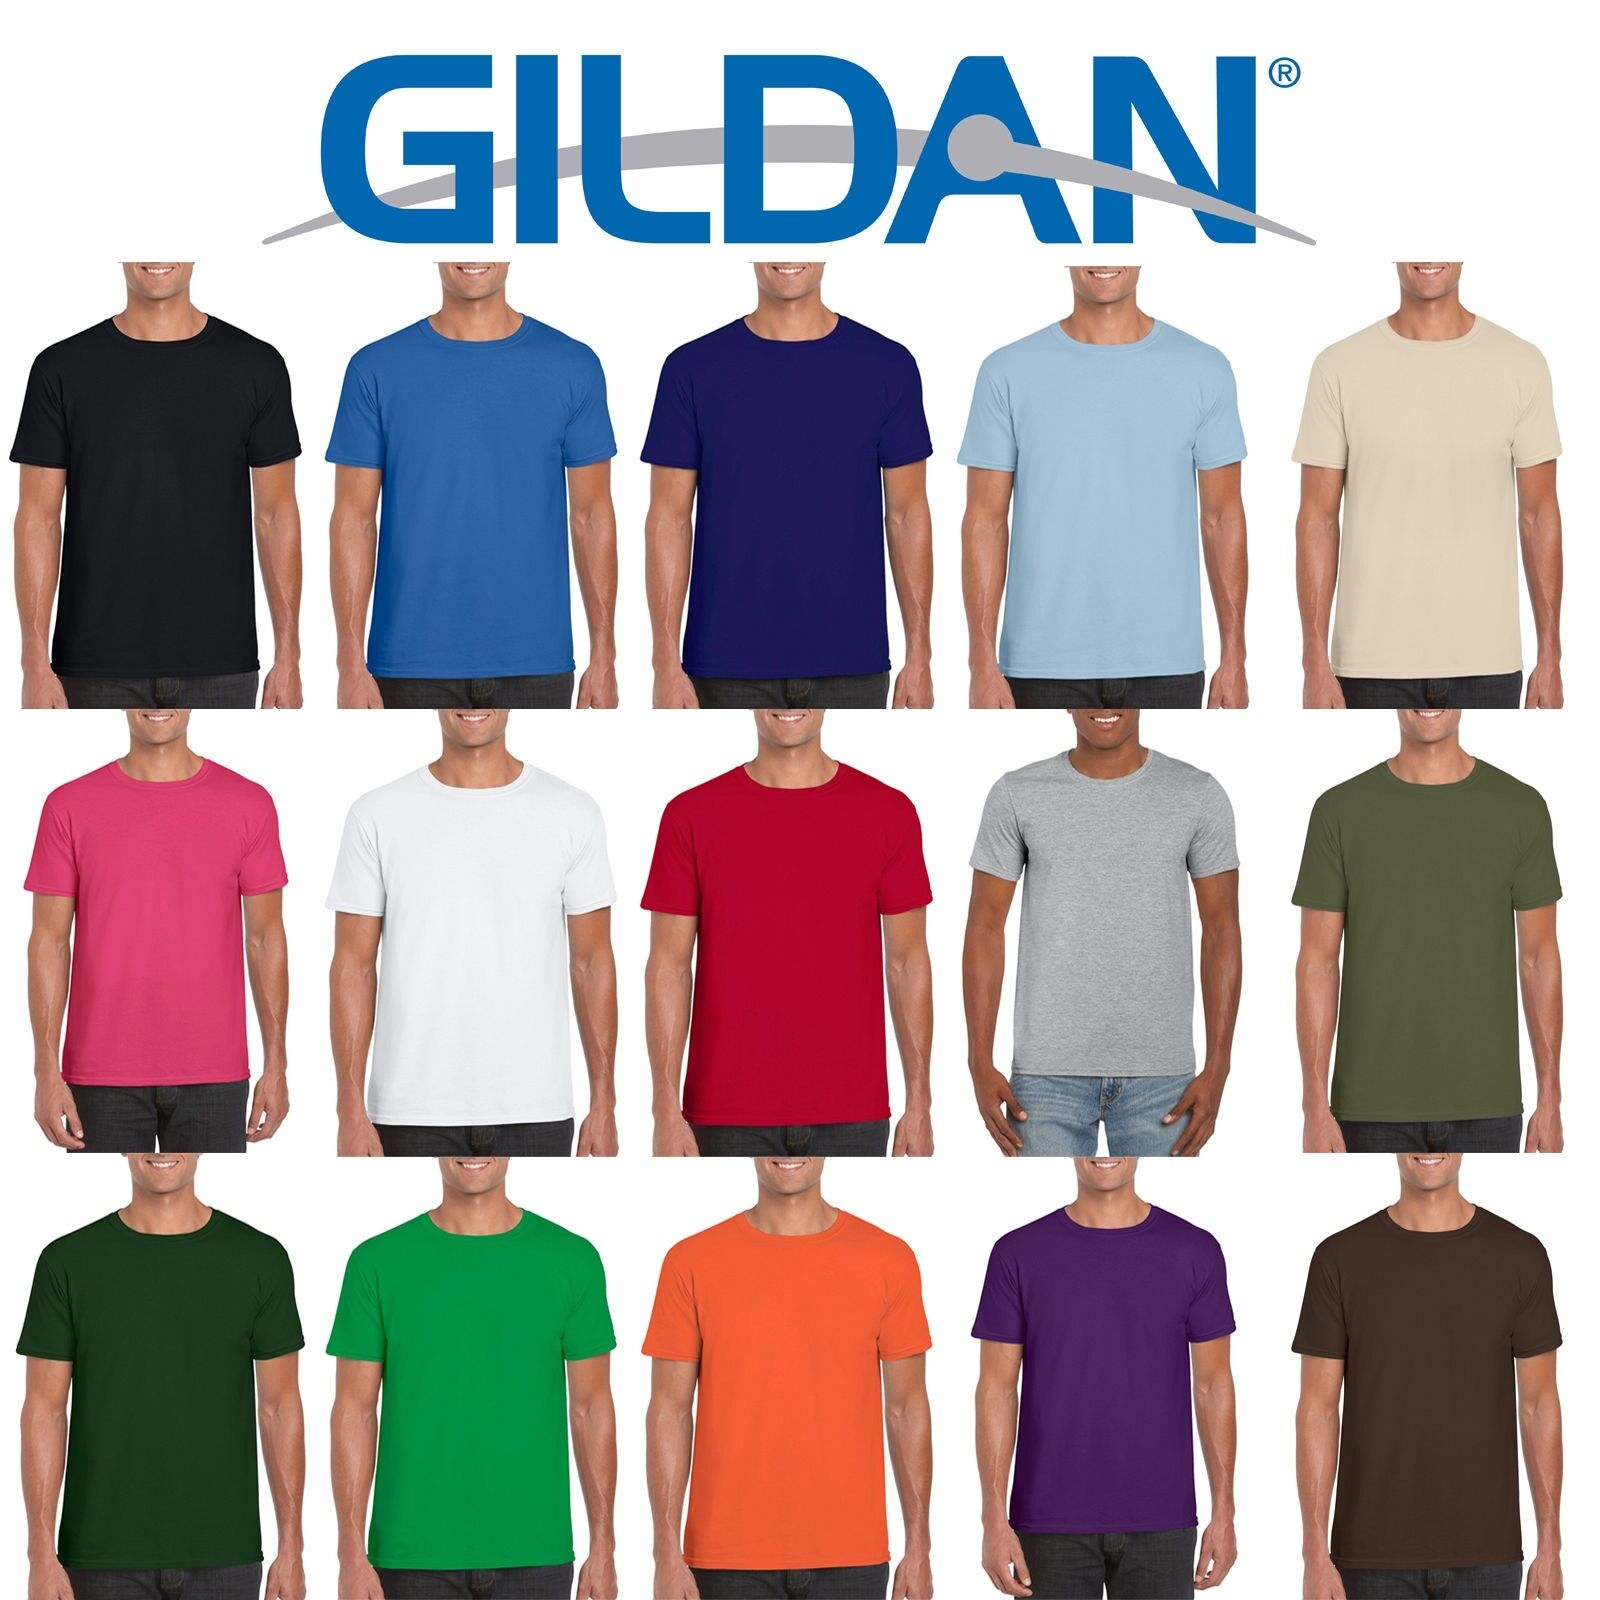 Details about Gildan Softstyle Cotton Plain Blank Mens Womens T Shirts  Wholesale Cheap Bulk 4b0eae3f2e